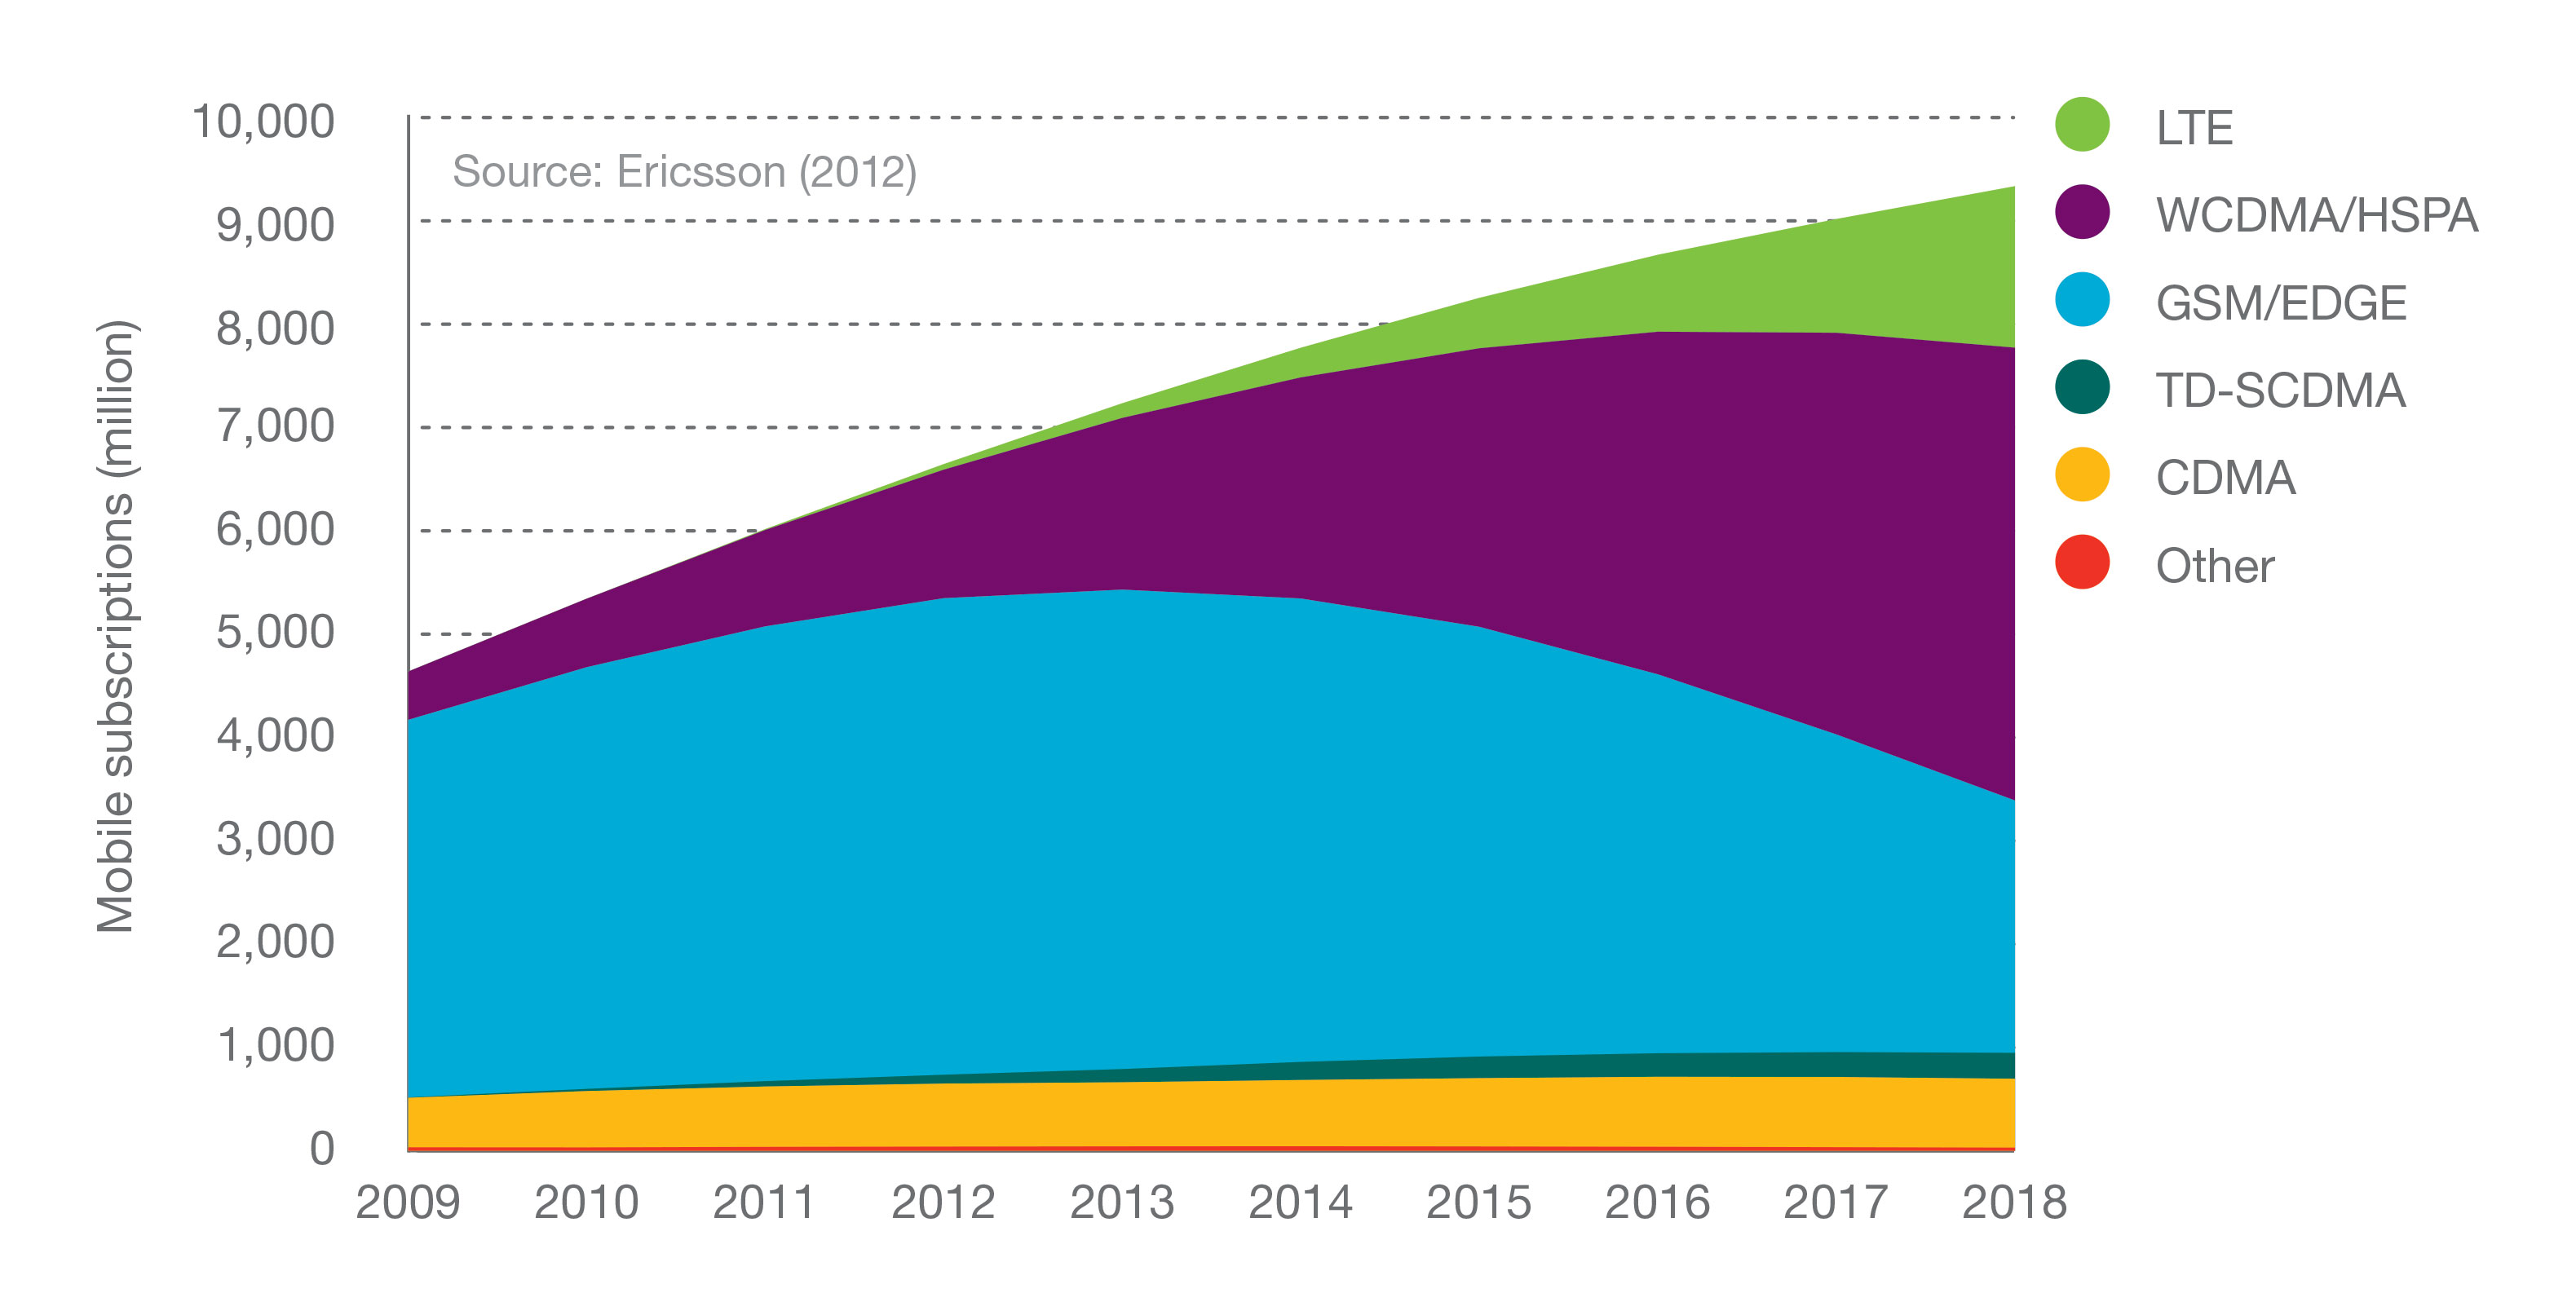 Figure 5: Mobile subscriptions by technology, 2009-2018 jpeg